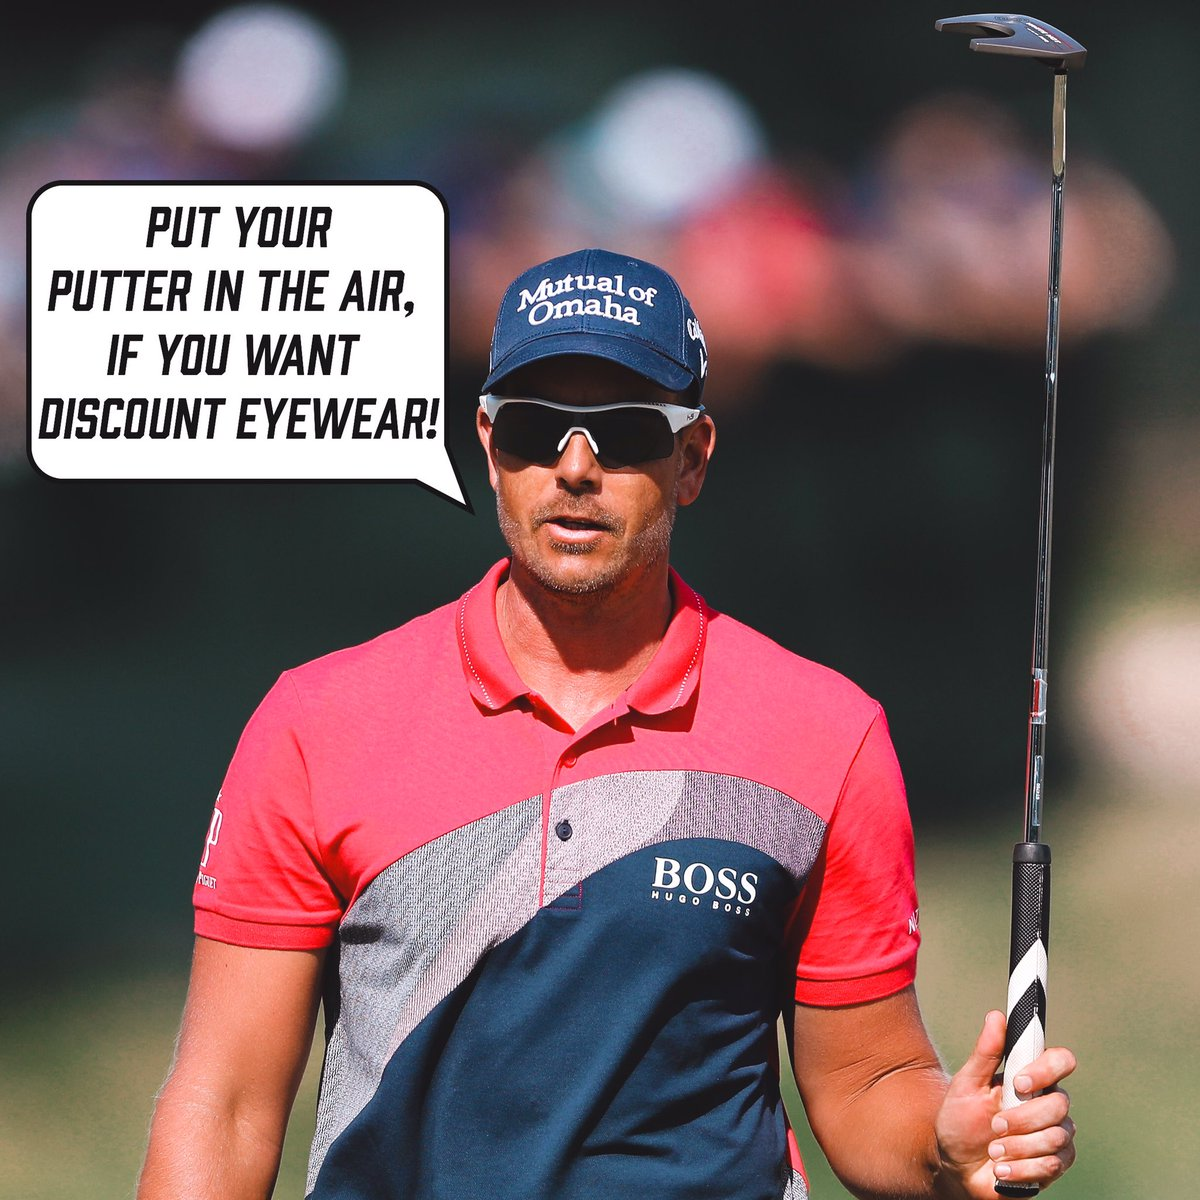 2 weeks until the @usopengolf returns and we are giving away a MAJOR exclusive offer...head over to our website for more details😎  🔗https://t.co/eeyZCoS2AX  #sunglasses #eyewear #sunglassesfashion #eyewearfashion #protection #golf #sports #henrikstensoneyewear https://t.co/QOe8dMPqhU